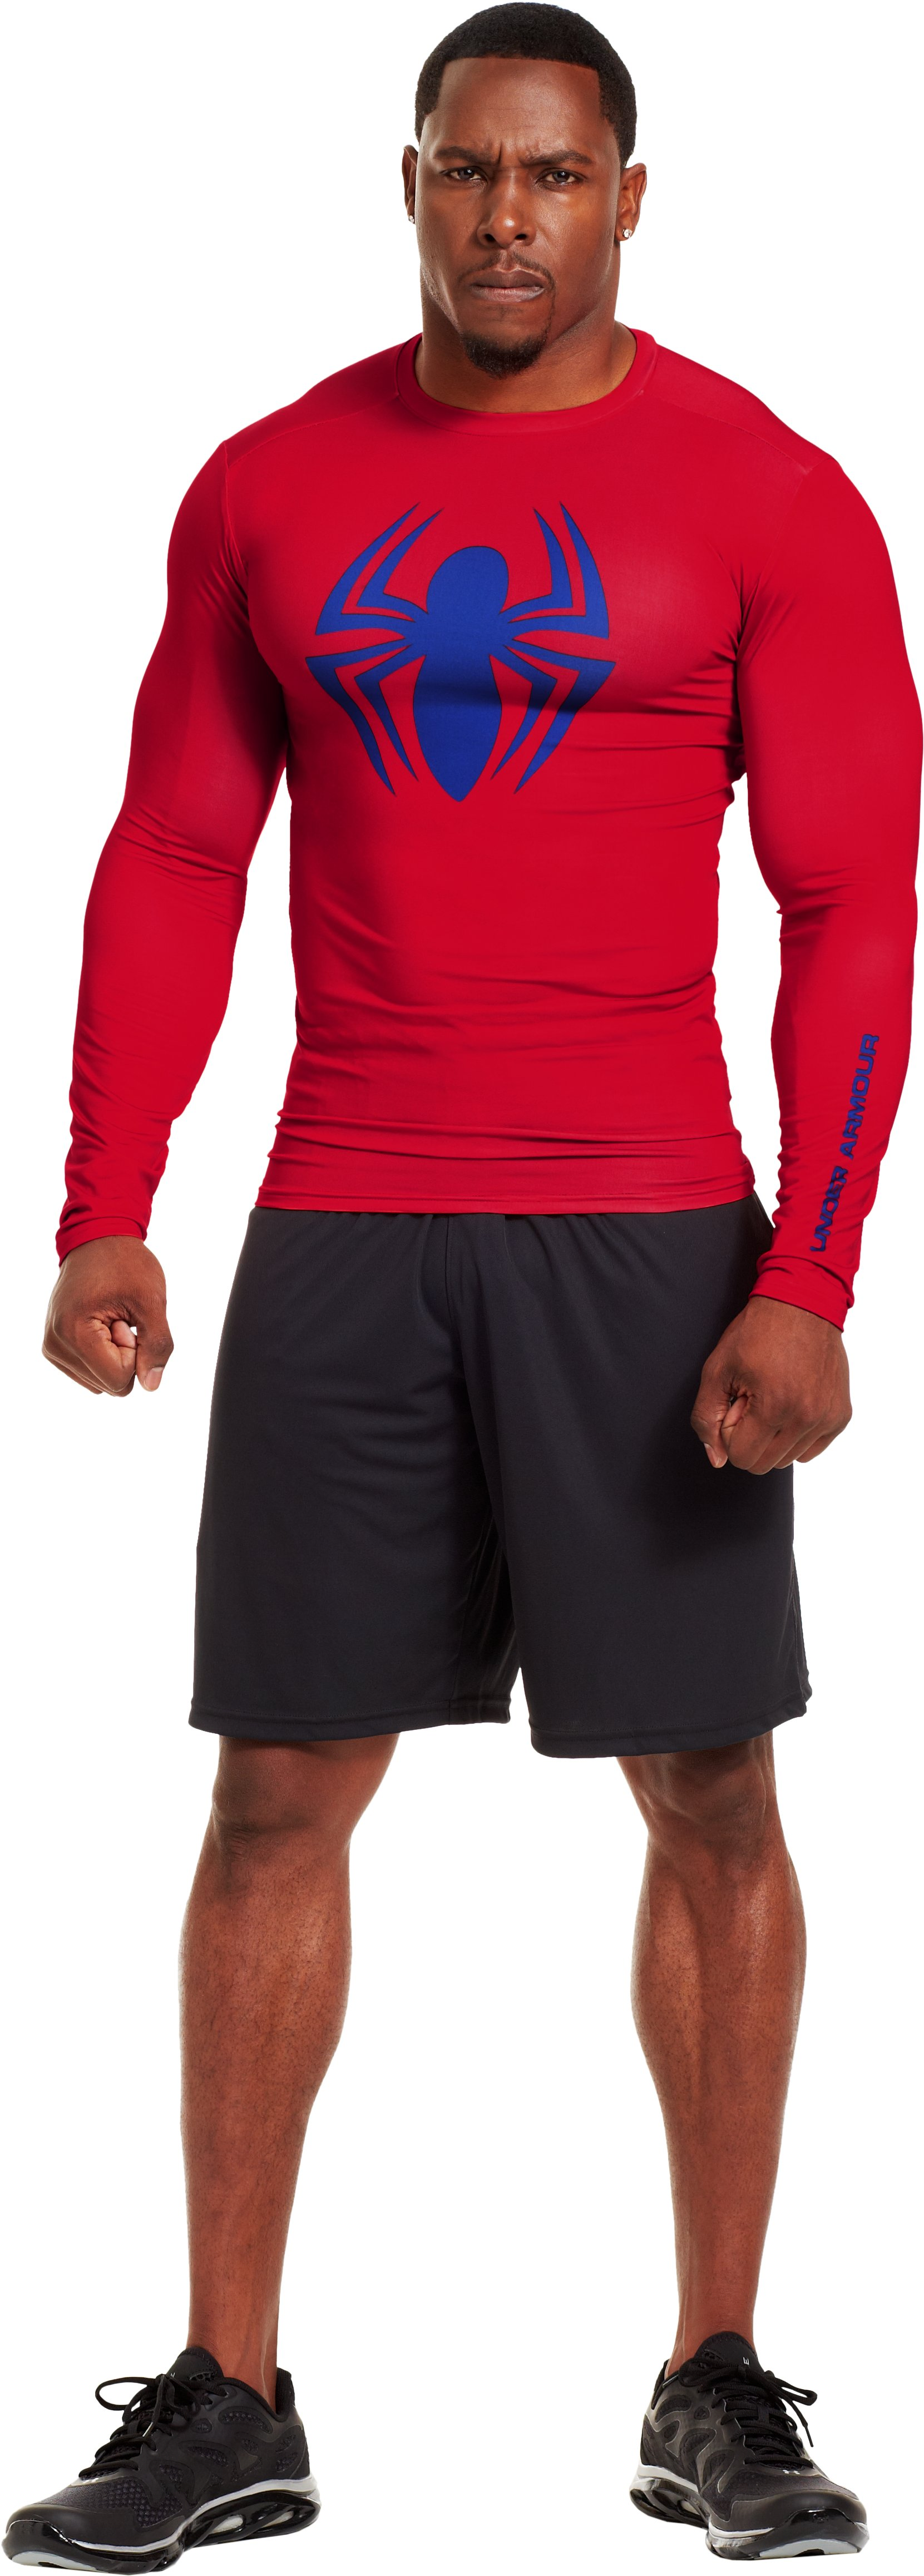 Men's Under Armour® Alter Ego Compression Long Sleeve Shirt, Red, zoomed image